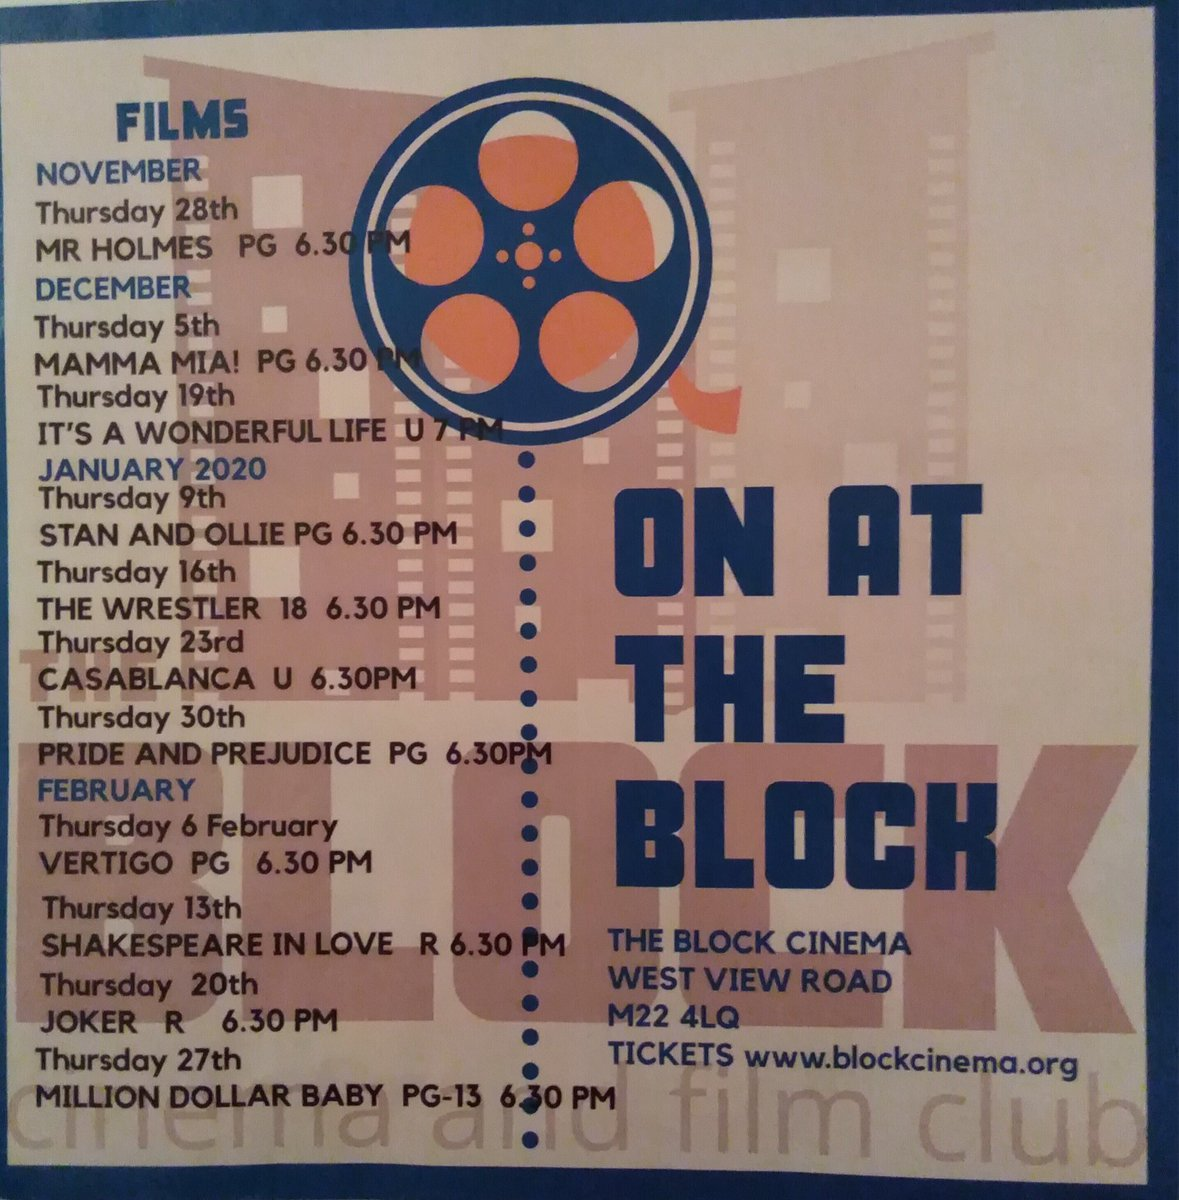 We are really missing our weekly film at @BlockCinema in Northenden. So it's nice to receive the weekly quiz until The Block reopens. Thanks for the challenge! @ADBL100 @wythenshawe_chg @MCCWythenshawe